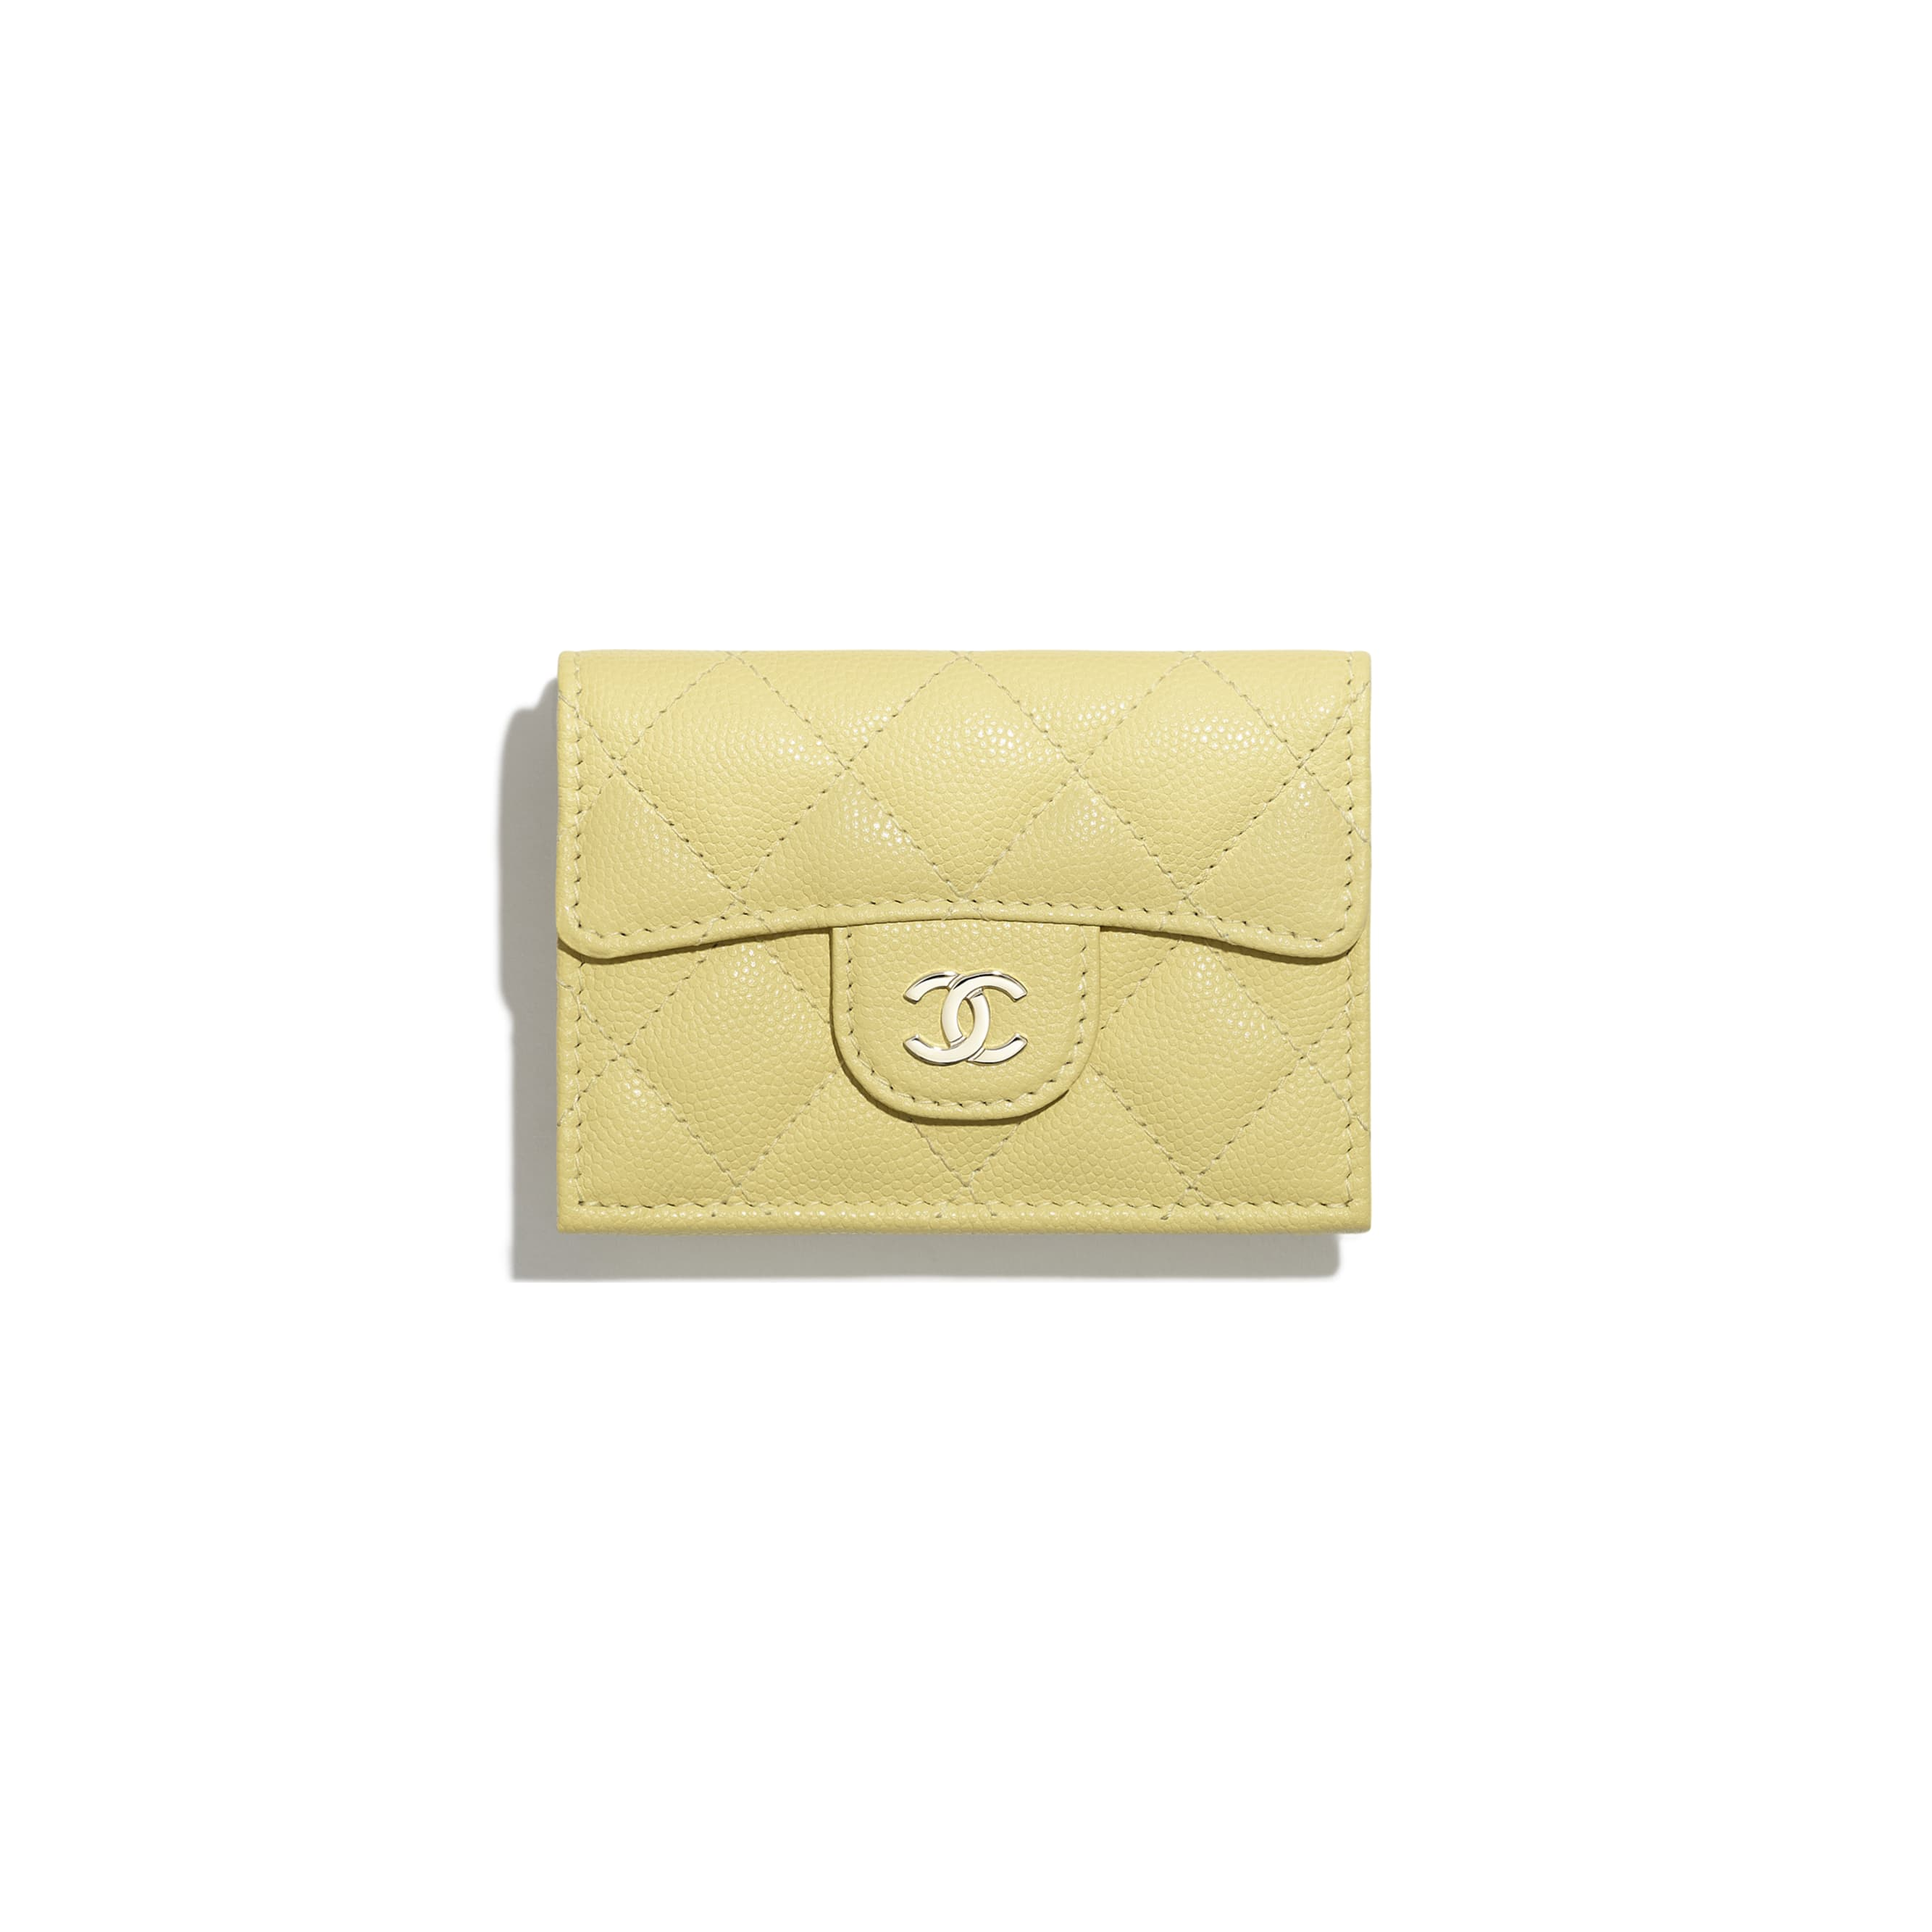 Classic Small Flap Wallet - Yellow - Grained Calfskin & Gold-Tone Metal - CHANEL - Default view - see standard sized version